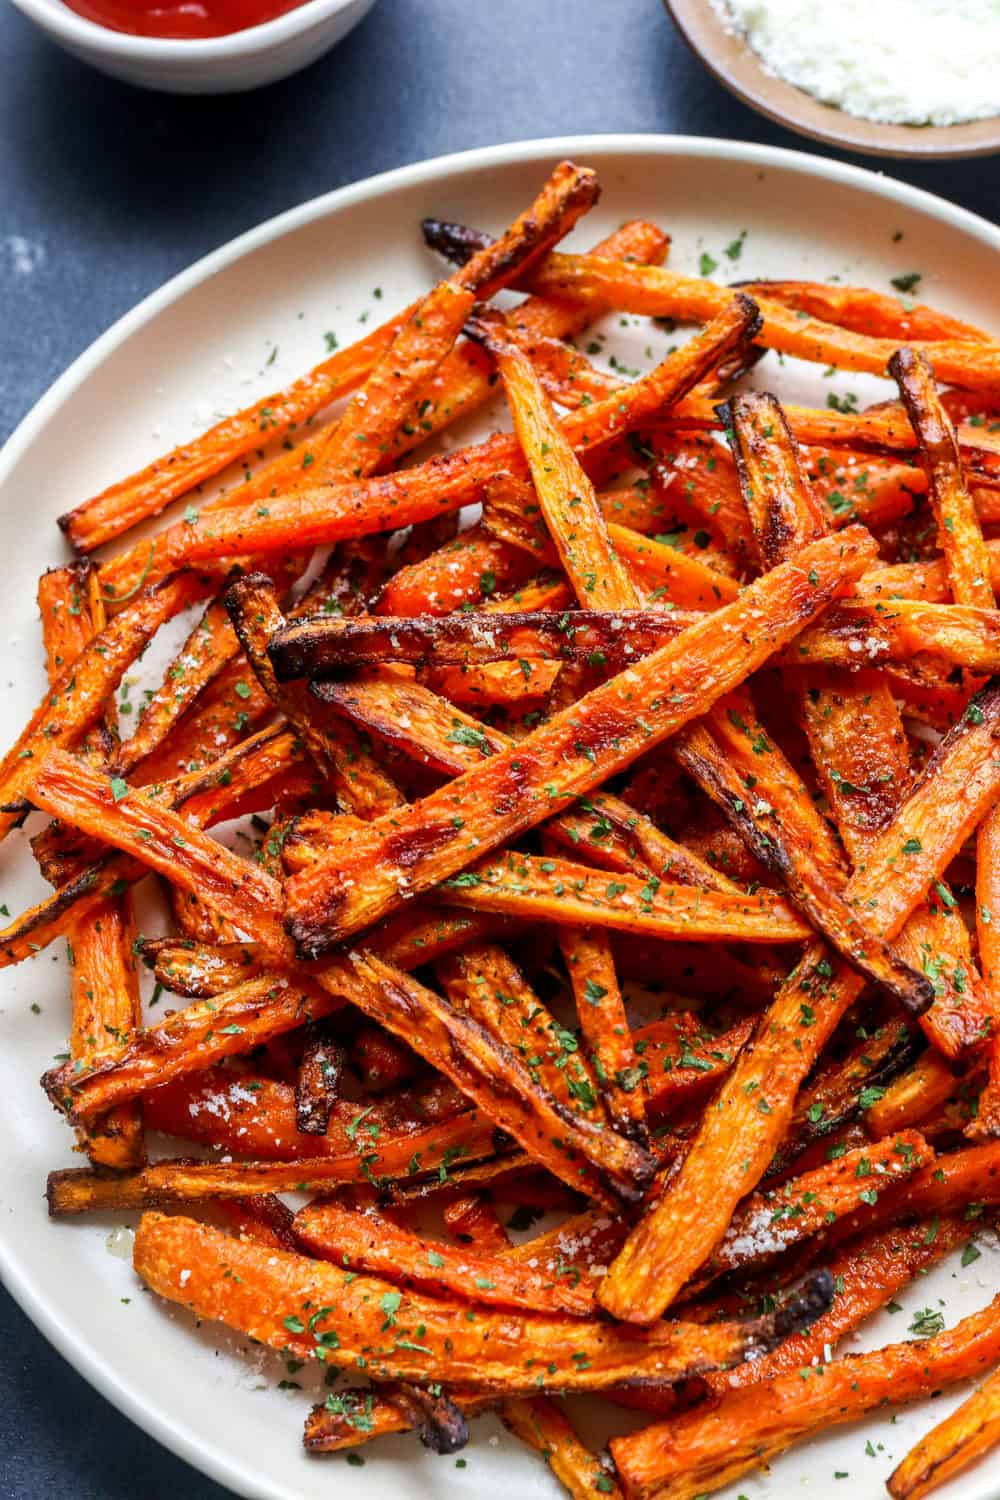 Bright orange golden brown carrot sticks in a pile on a plate topped with dried parsley and grated parmesan cheese.